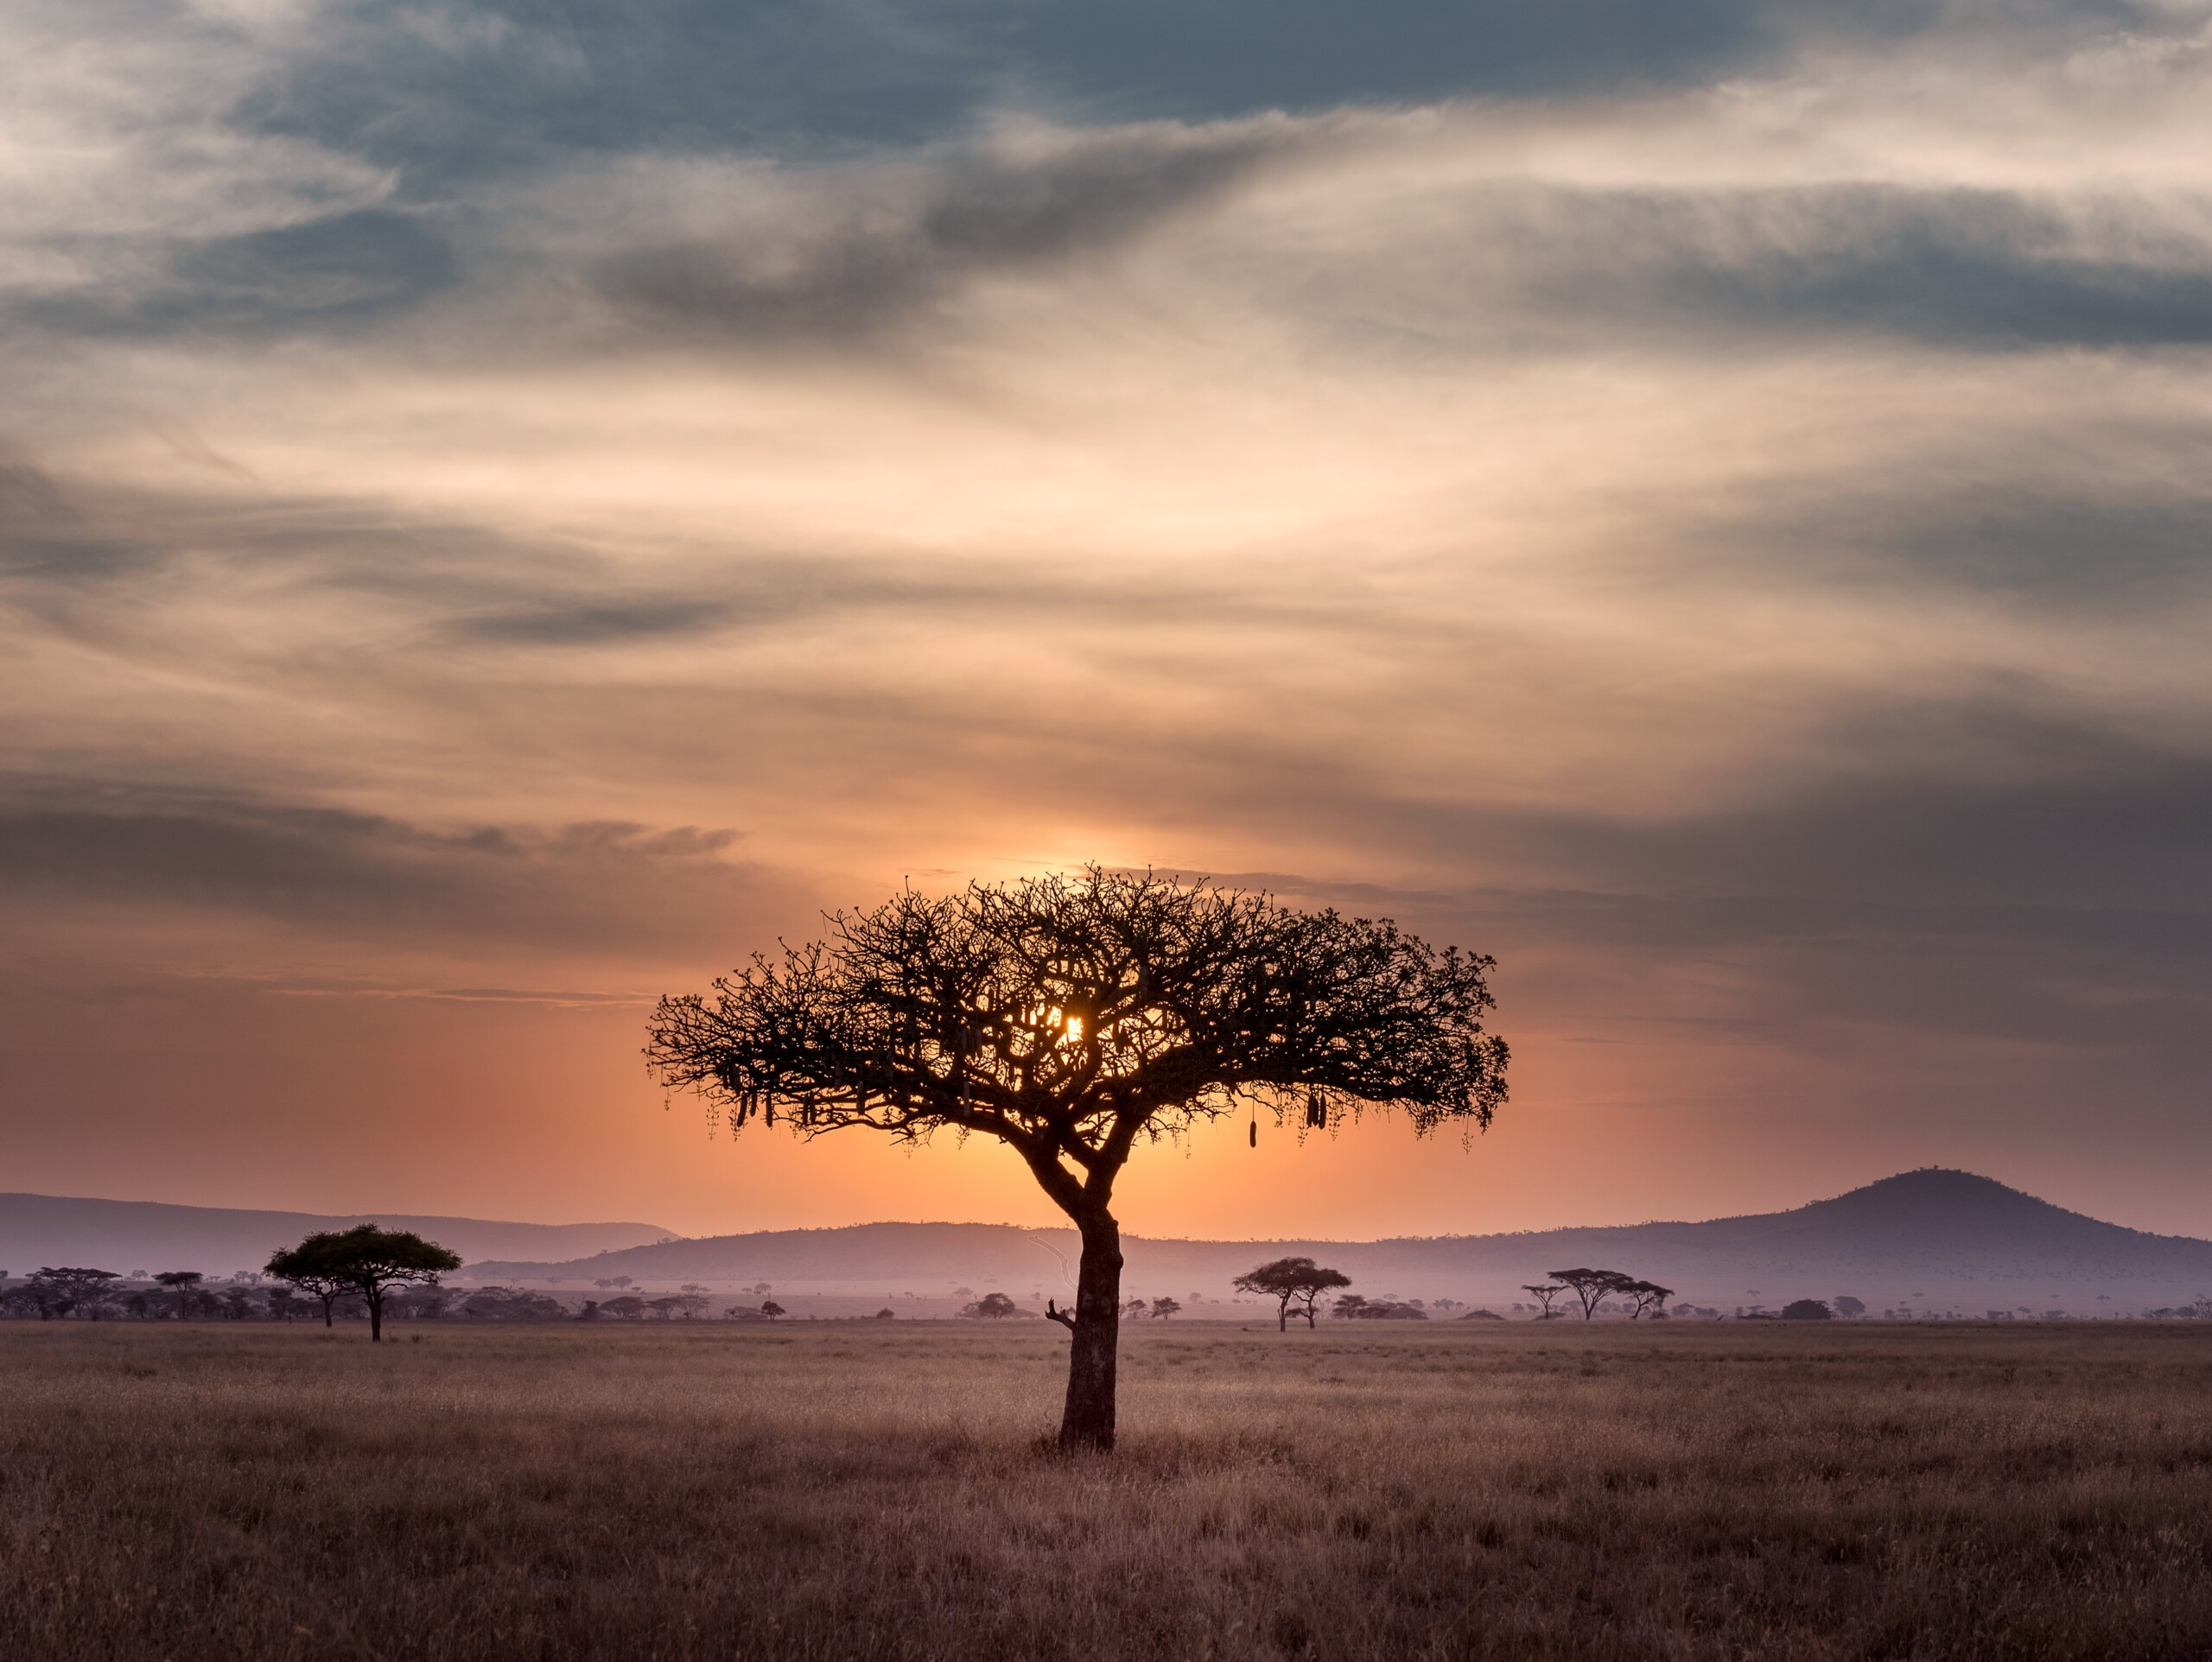 african sunset with a tree silhouette